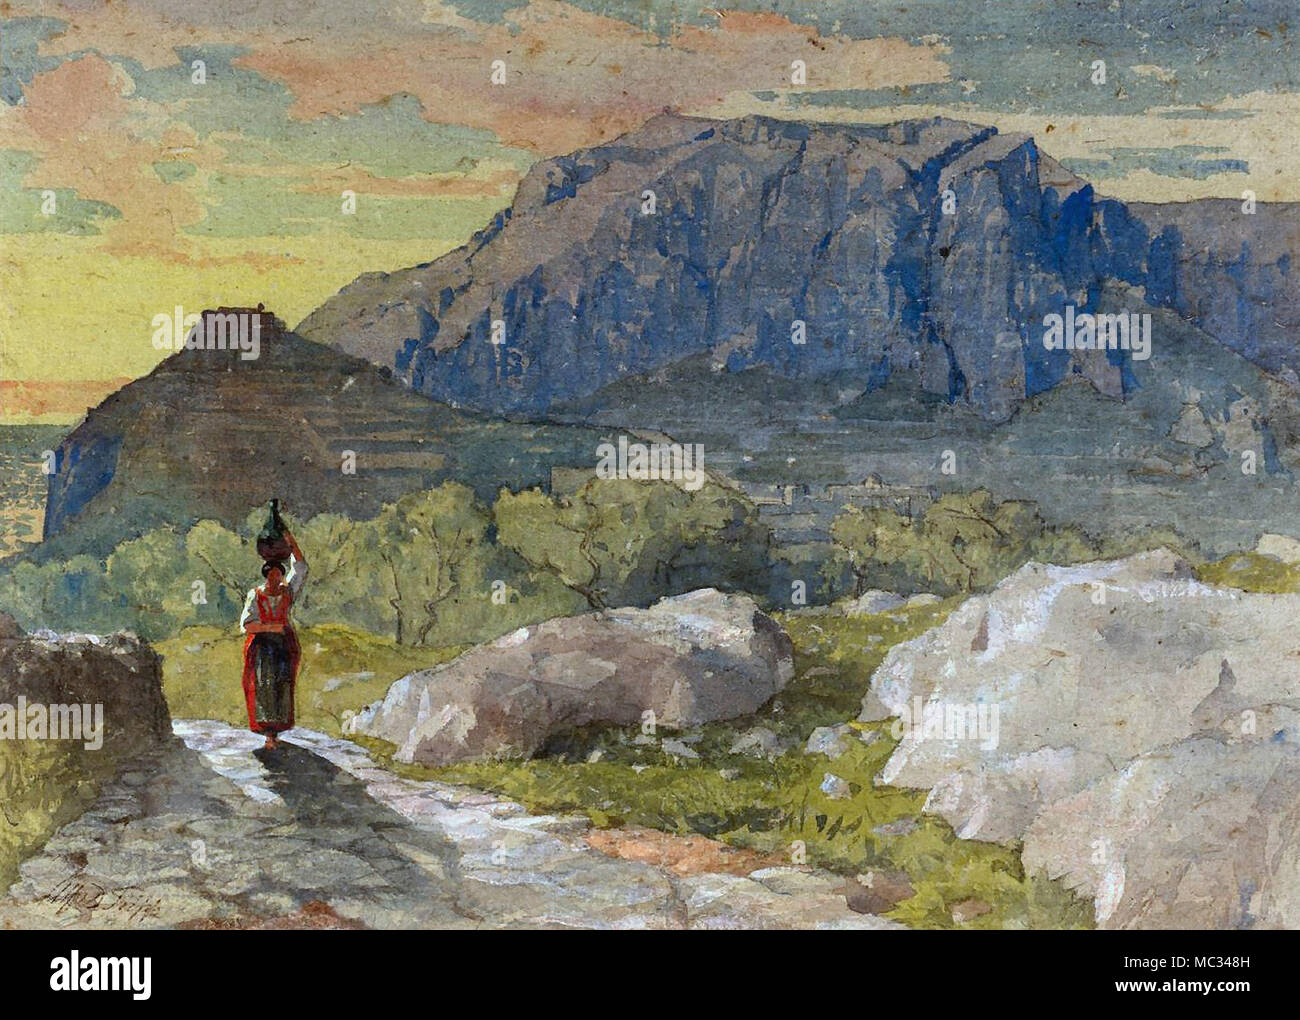 Fripp Alfred Downing - Peasant Woman in a Mountainous Landscape Capri - Stock Image